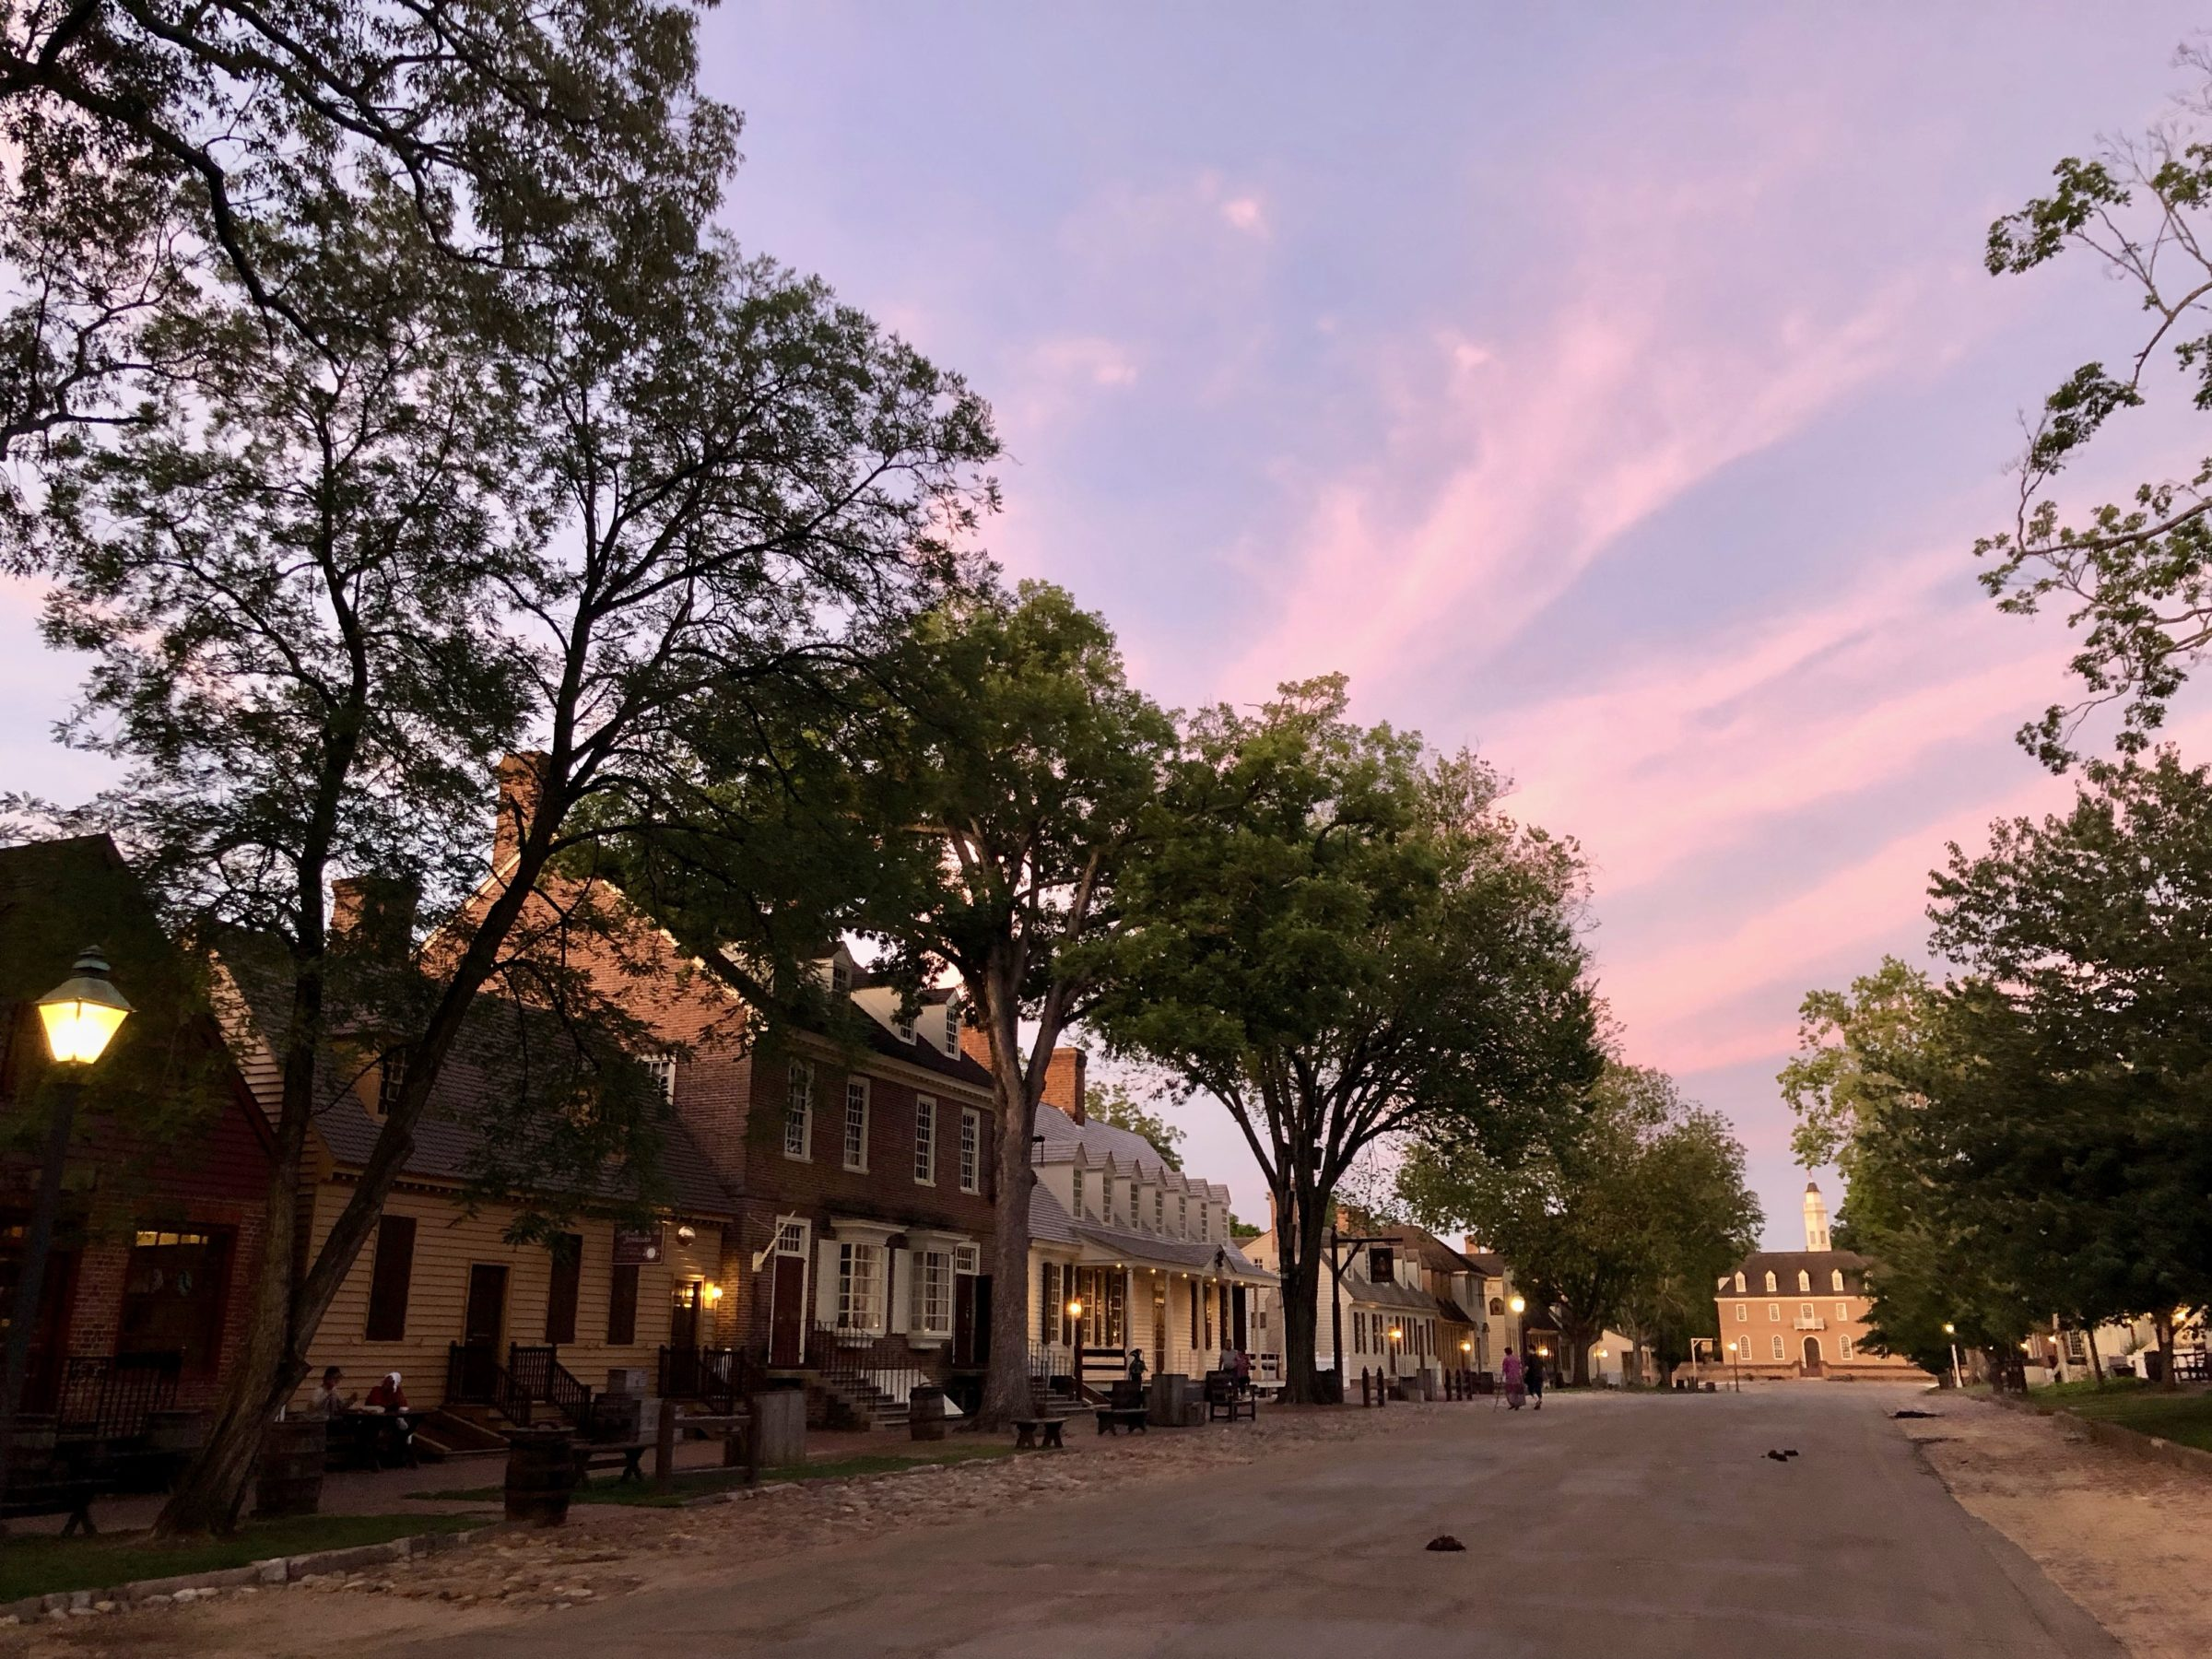 Things to do in Greater Williamsburg are enjoy the town at sunset.